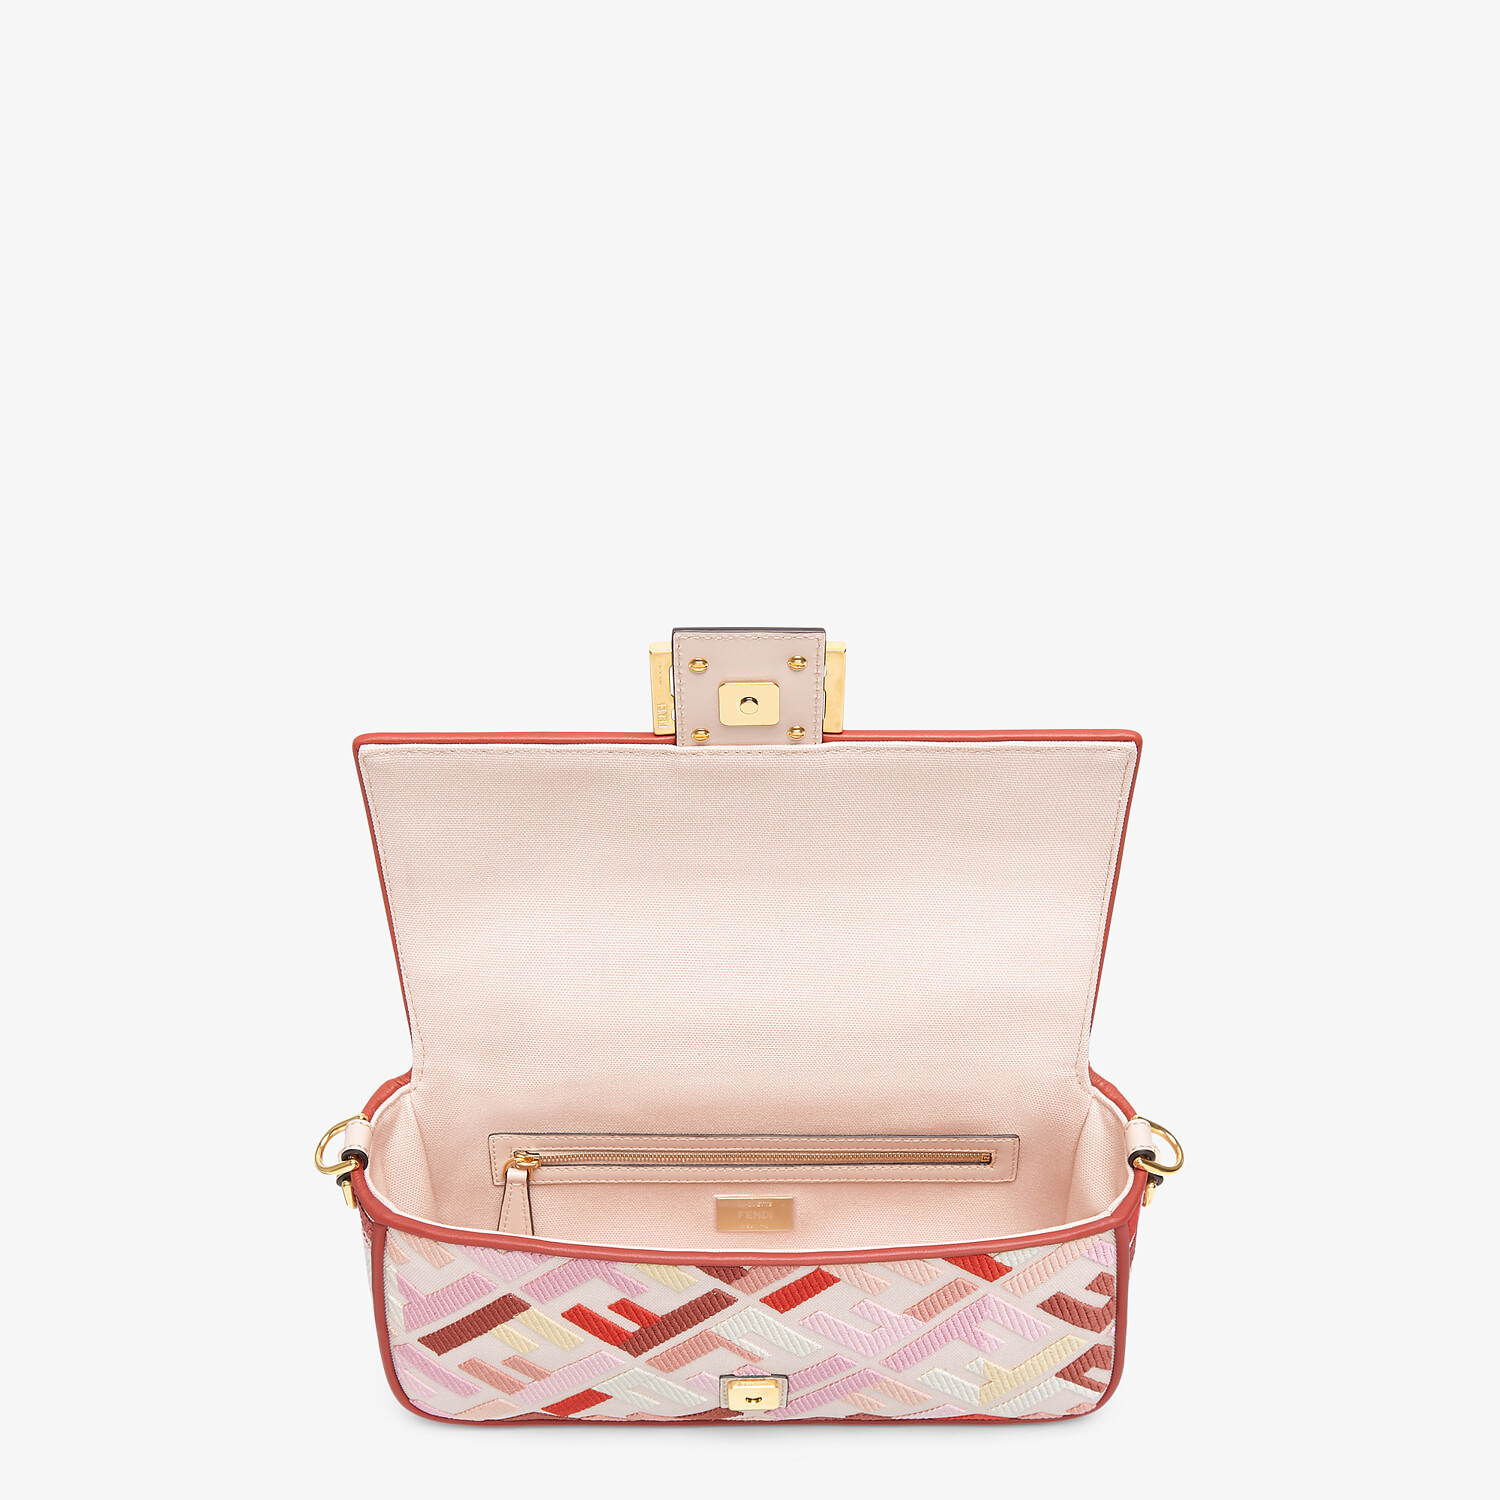 FENDI BAGUETTE - Bag from the Lunar New Year Limited Capsule Collection - view 4 detail